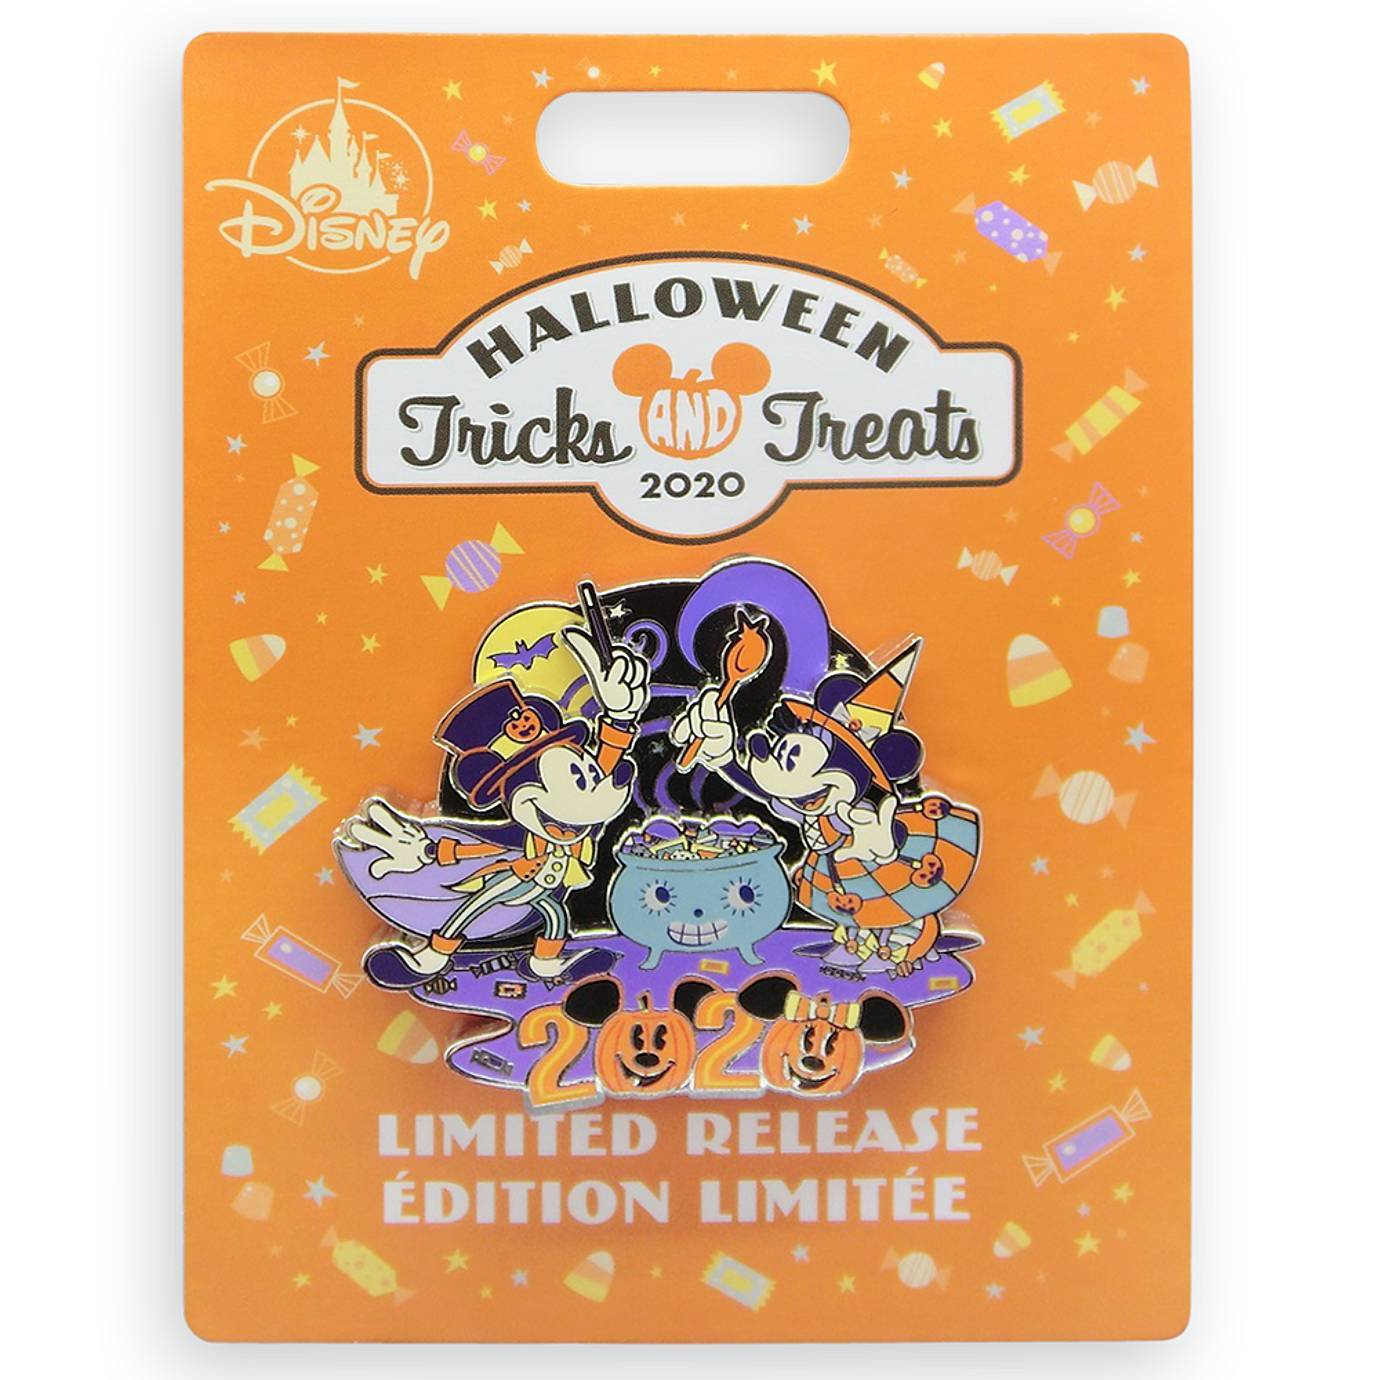 Disney S Spooky Collection Of 2020 Halloween Merchandise Has Arrived O The Lost Bros,Certificate Appreciation Certificate Template Blank Certificate Design Background Hd